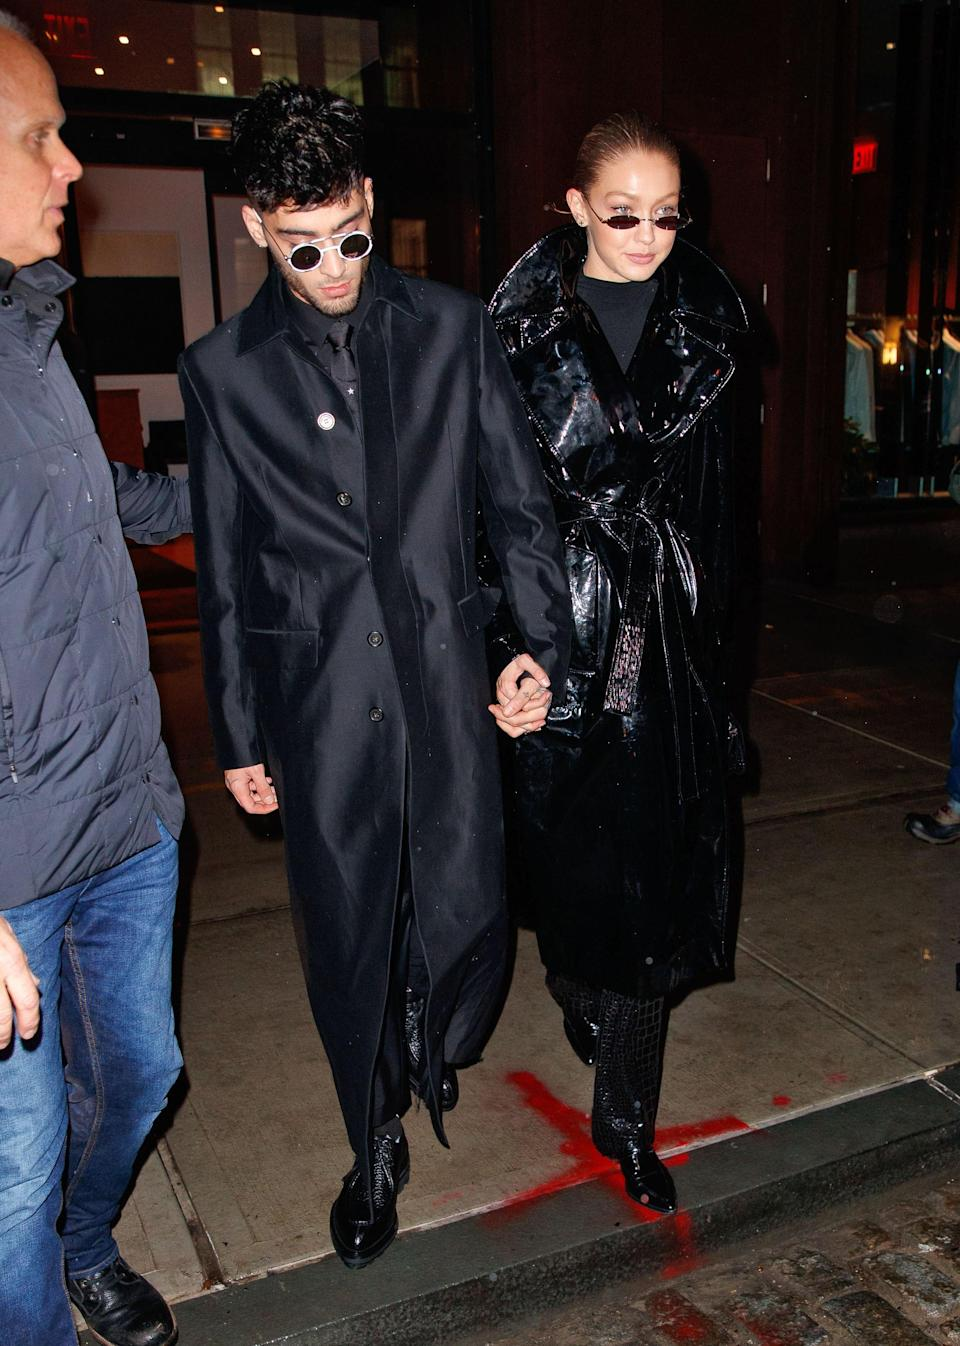 All black and tiny sunglasses? The perfect recipe for a killer couple look.